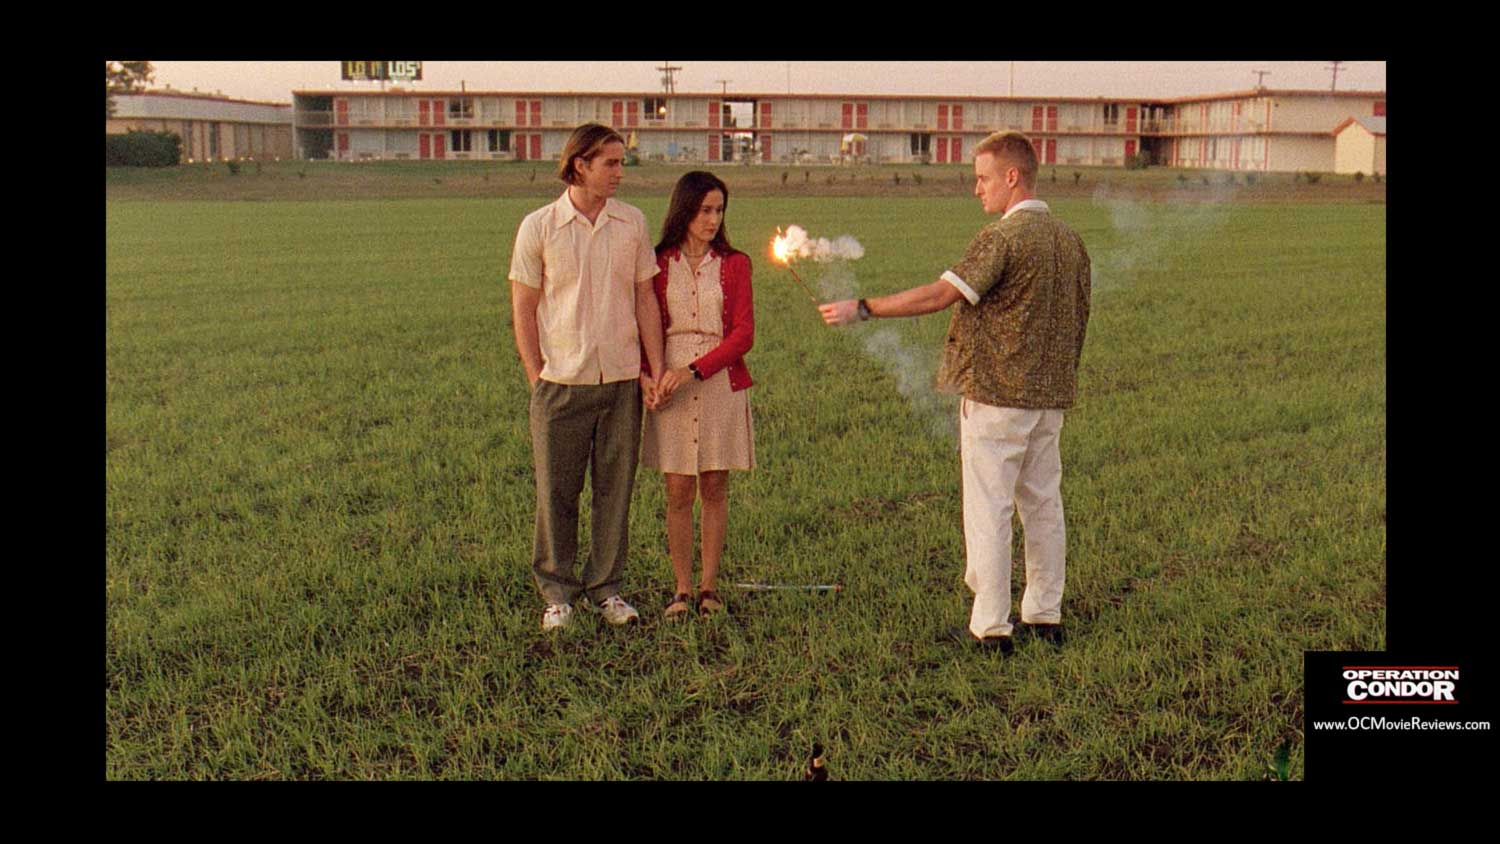 Bottle Rocket Blu-ray Review – A First For Many - OC Movie Reviews - Movie Reviews, Movie News, Documentary Reviews, Short Films, Short Film Reviews, Trailers, Movie Trailers, Interviews, film reviews, film news, hollywood, indie films, documentaries